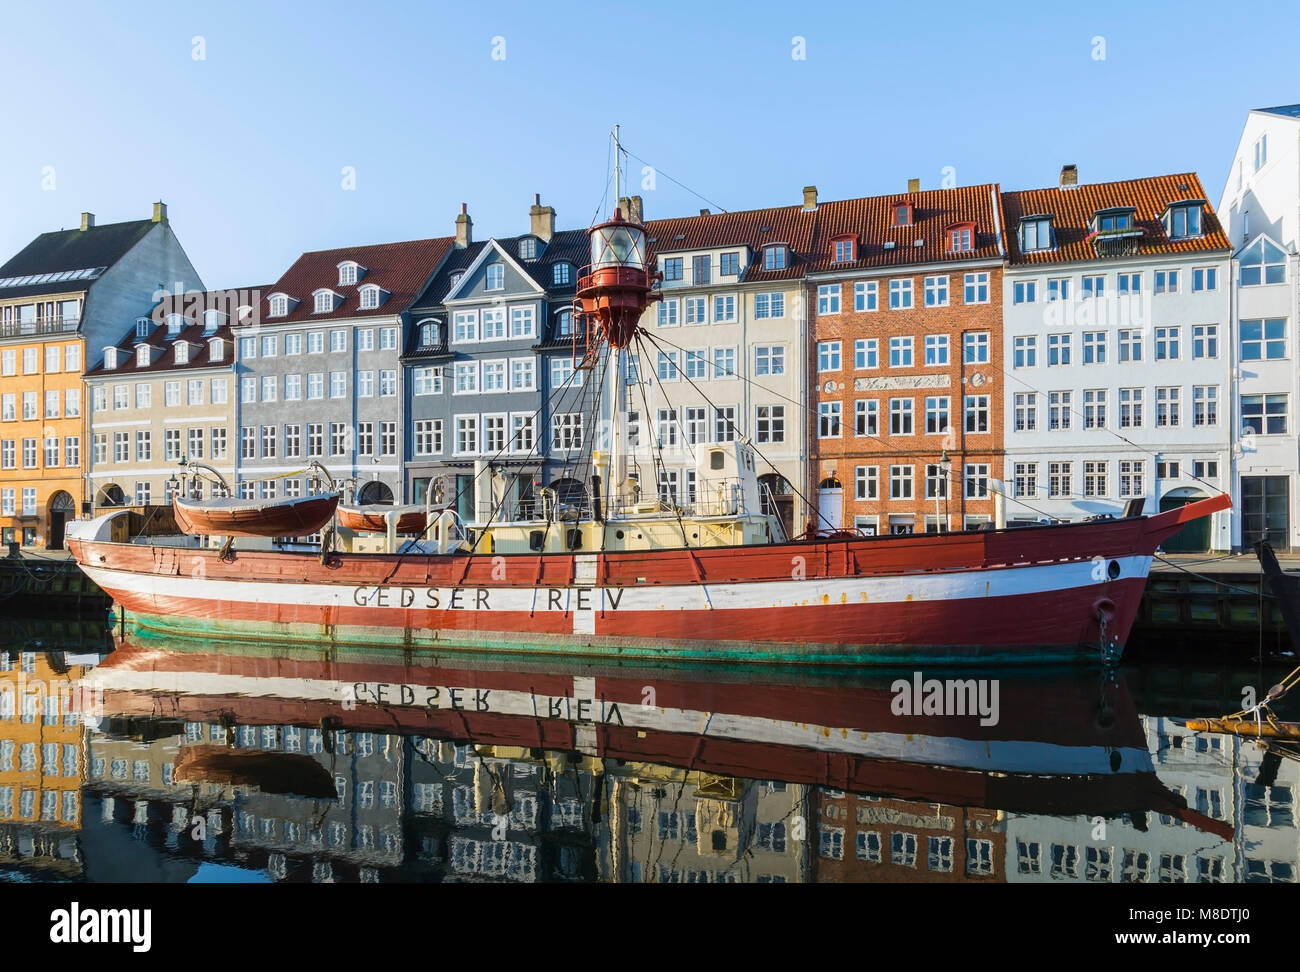 Moored boat with 17th century town houses on Nyhavn canal, Copenhagen, Denmark - Stock Image